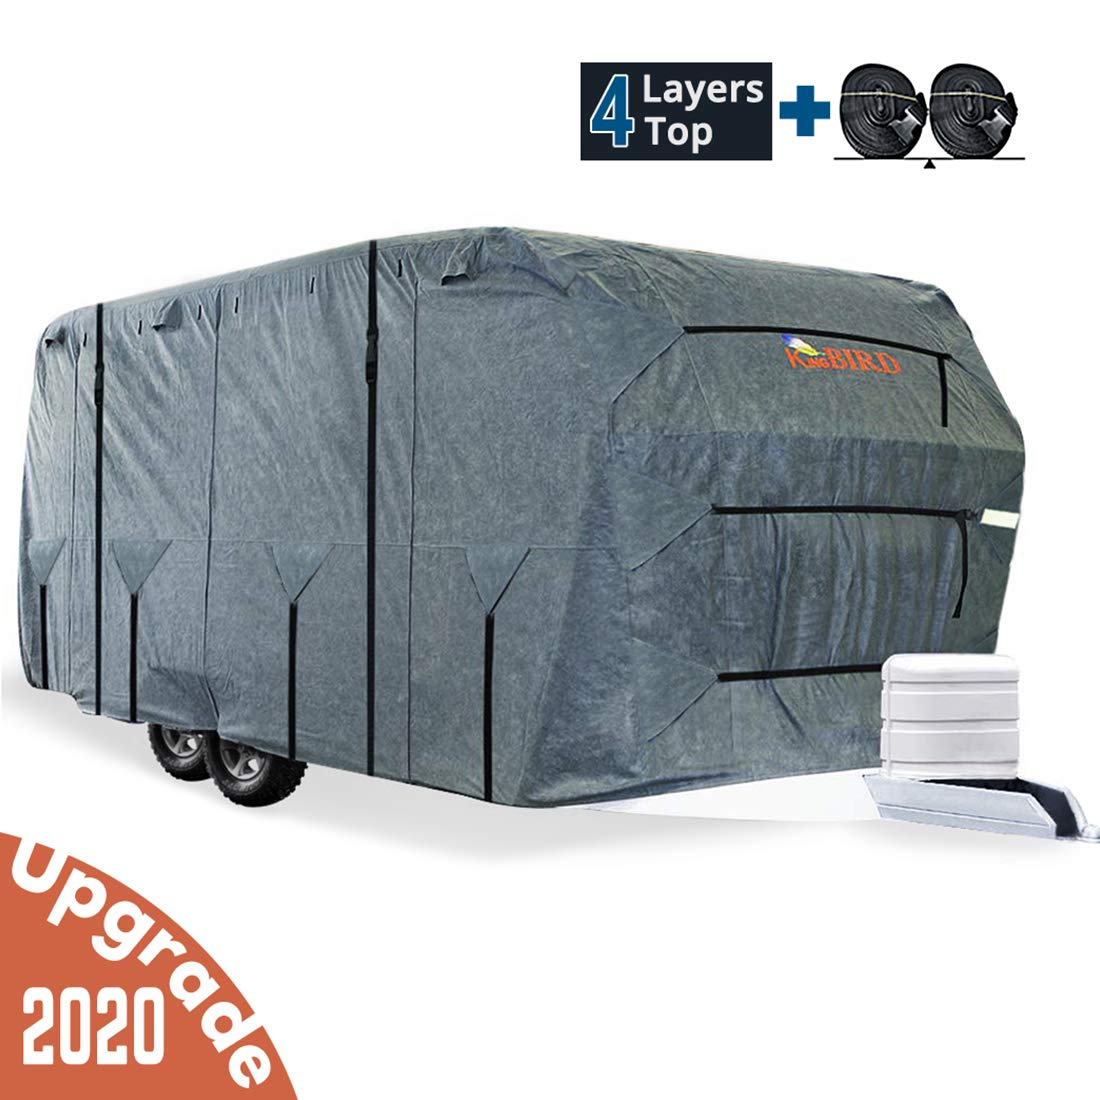 King Bird Extra-Thick-4-Ply Deluxe Camper Travel Trailer Cover}